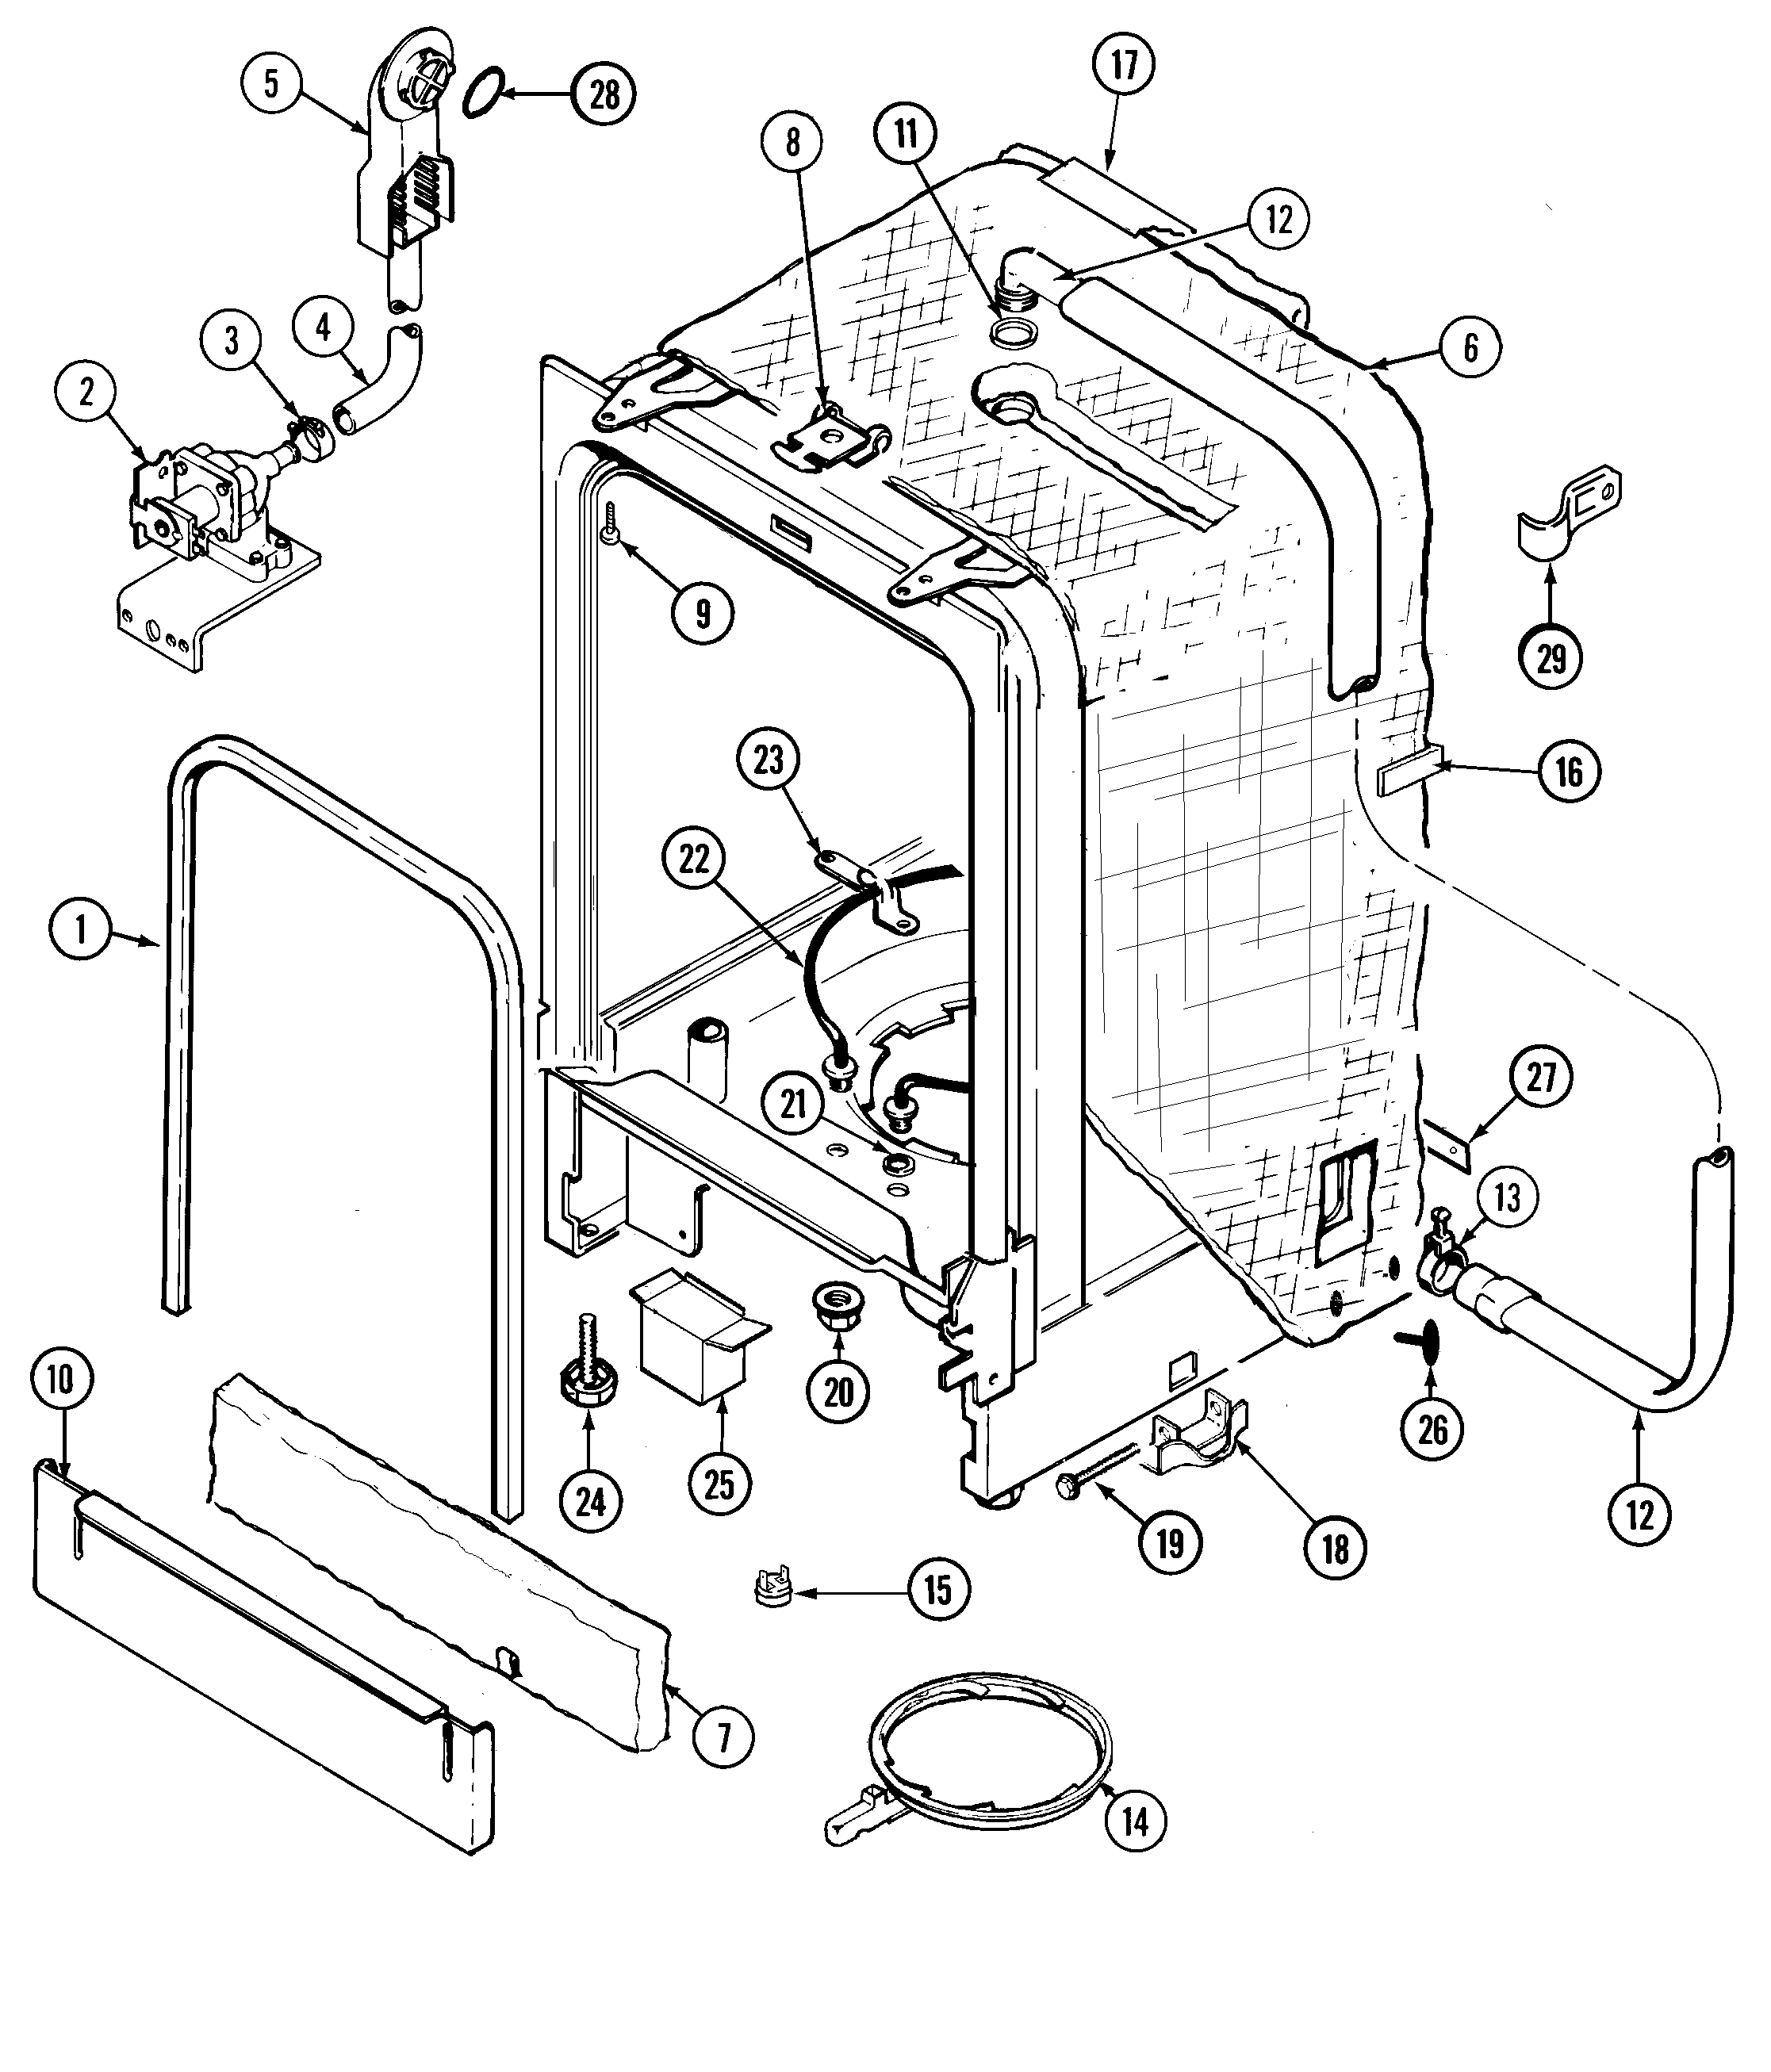 Dishwasher photo and guides: Beko Dishwasher Parts Diagram